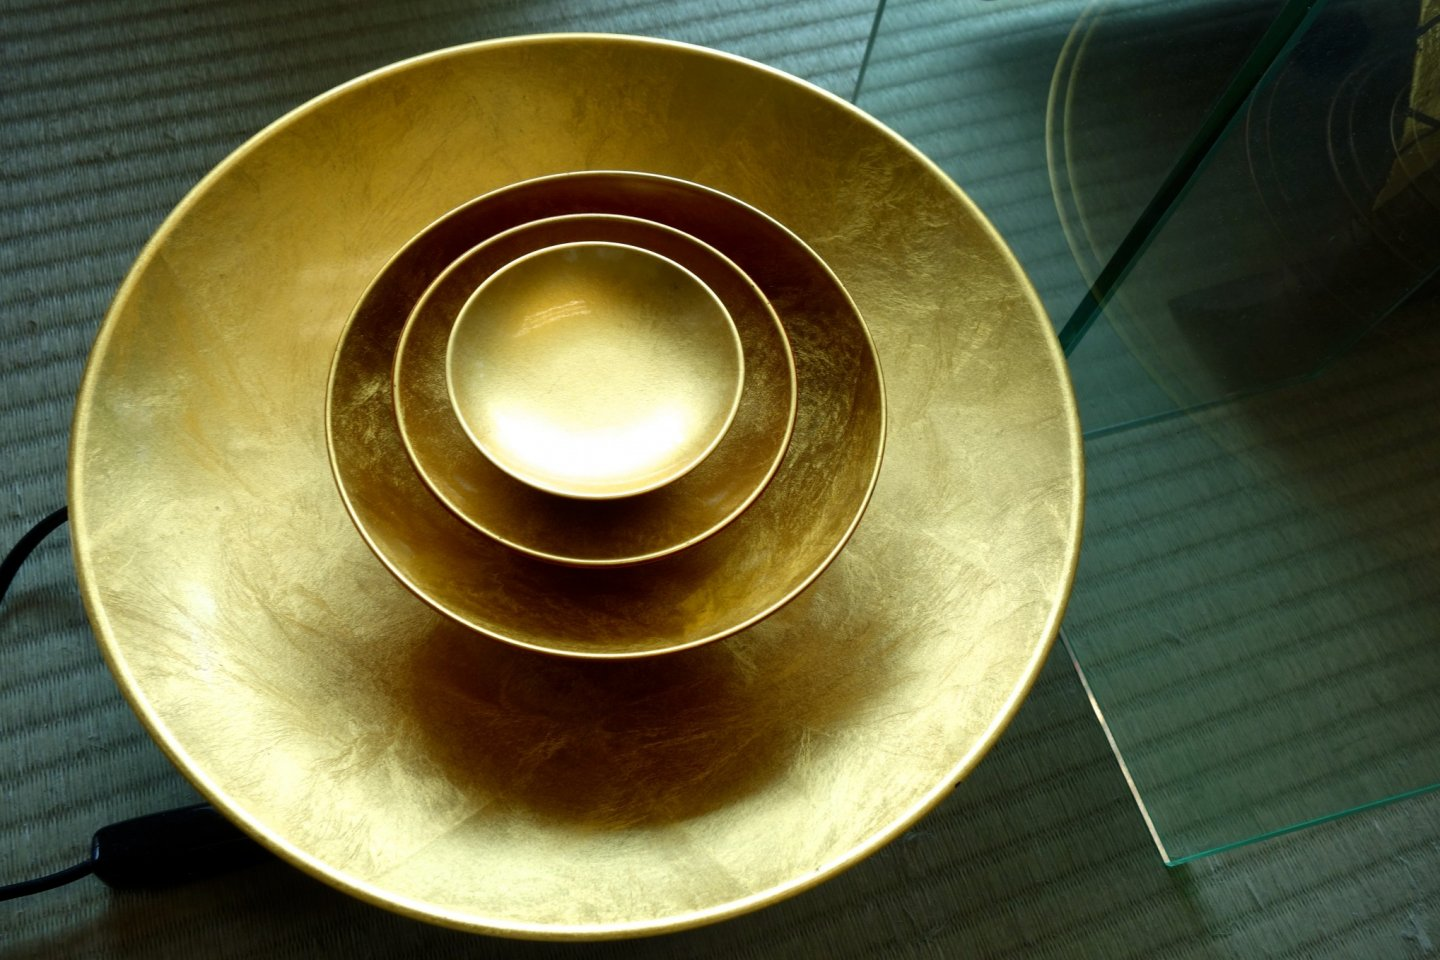 Plate set coated in Kanazawa gold leaf